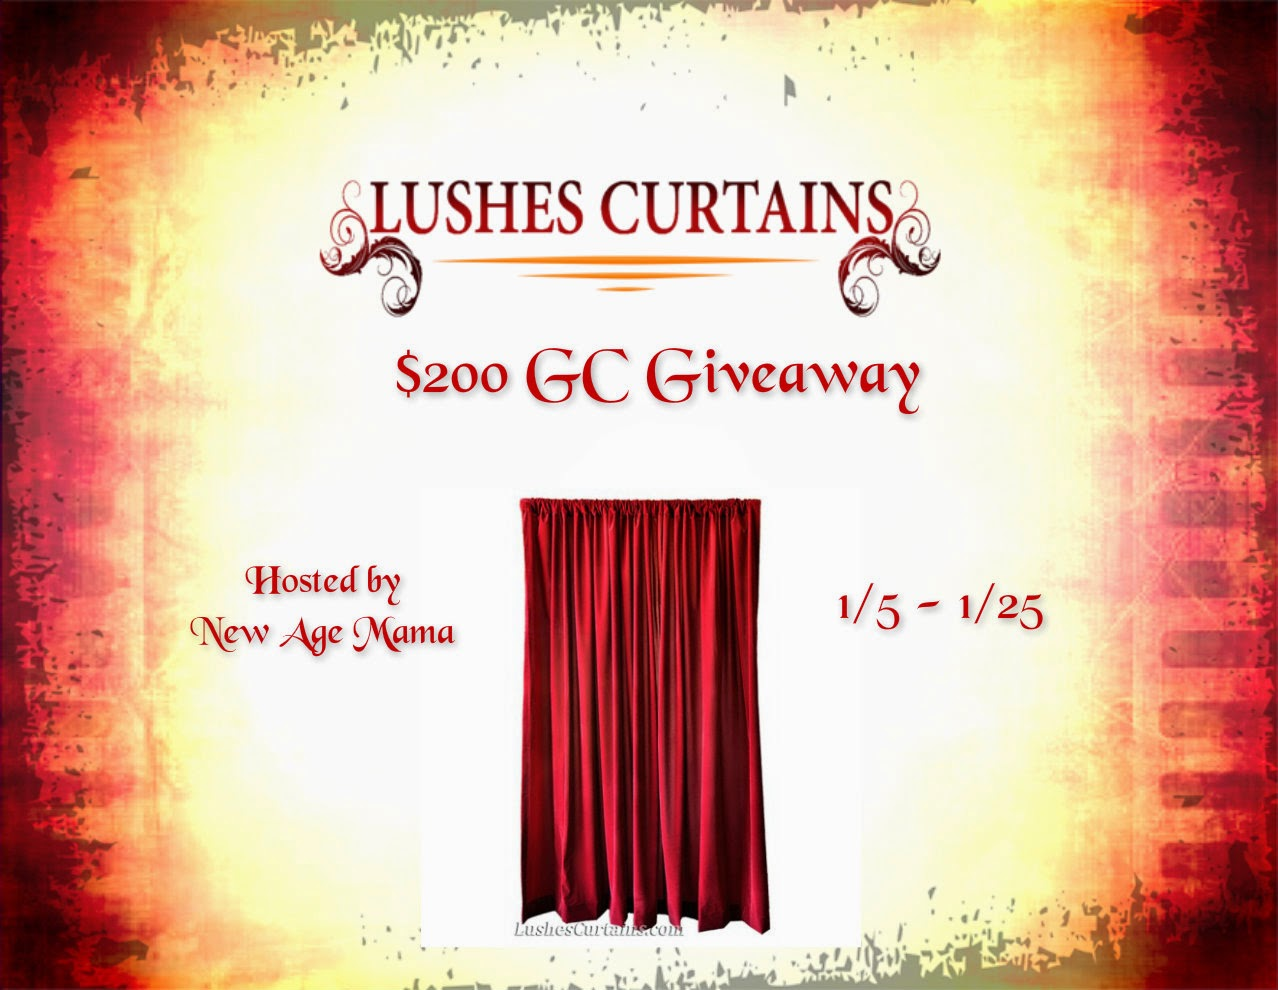 Enter the Lushes Curtains Giveaway. Ends 1/24.